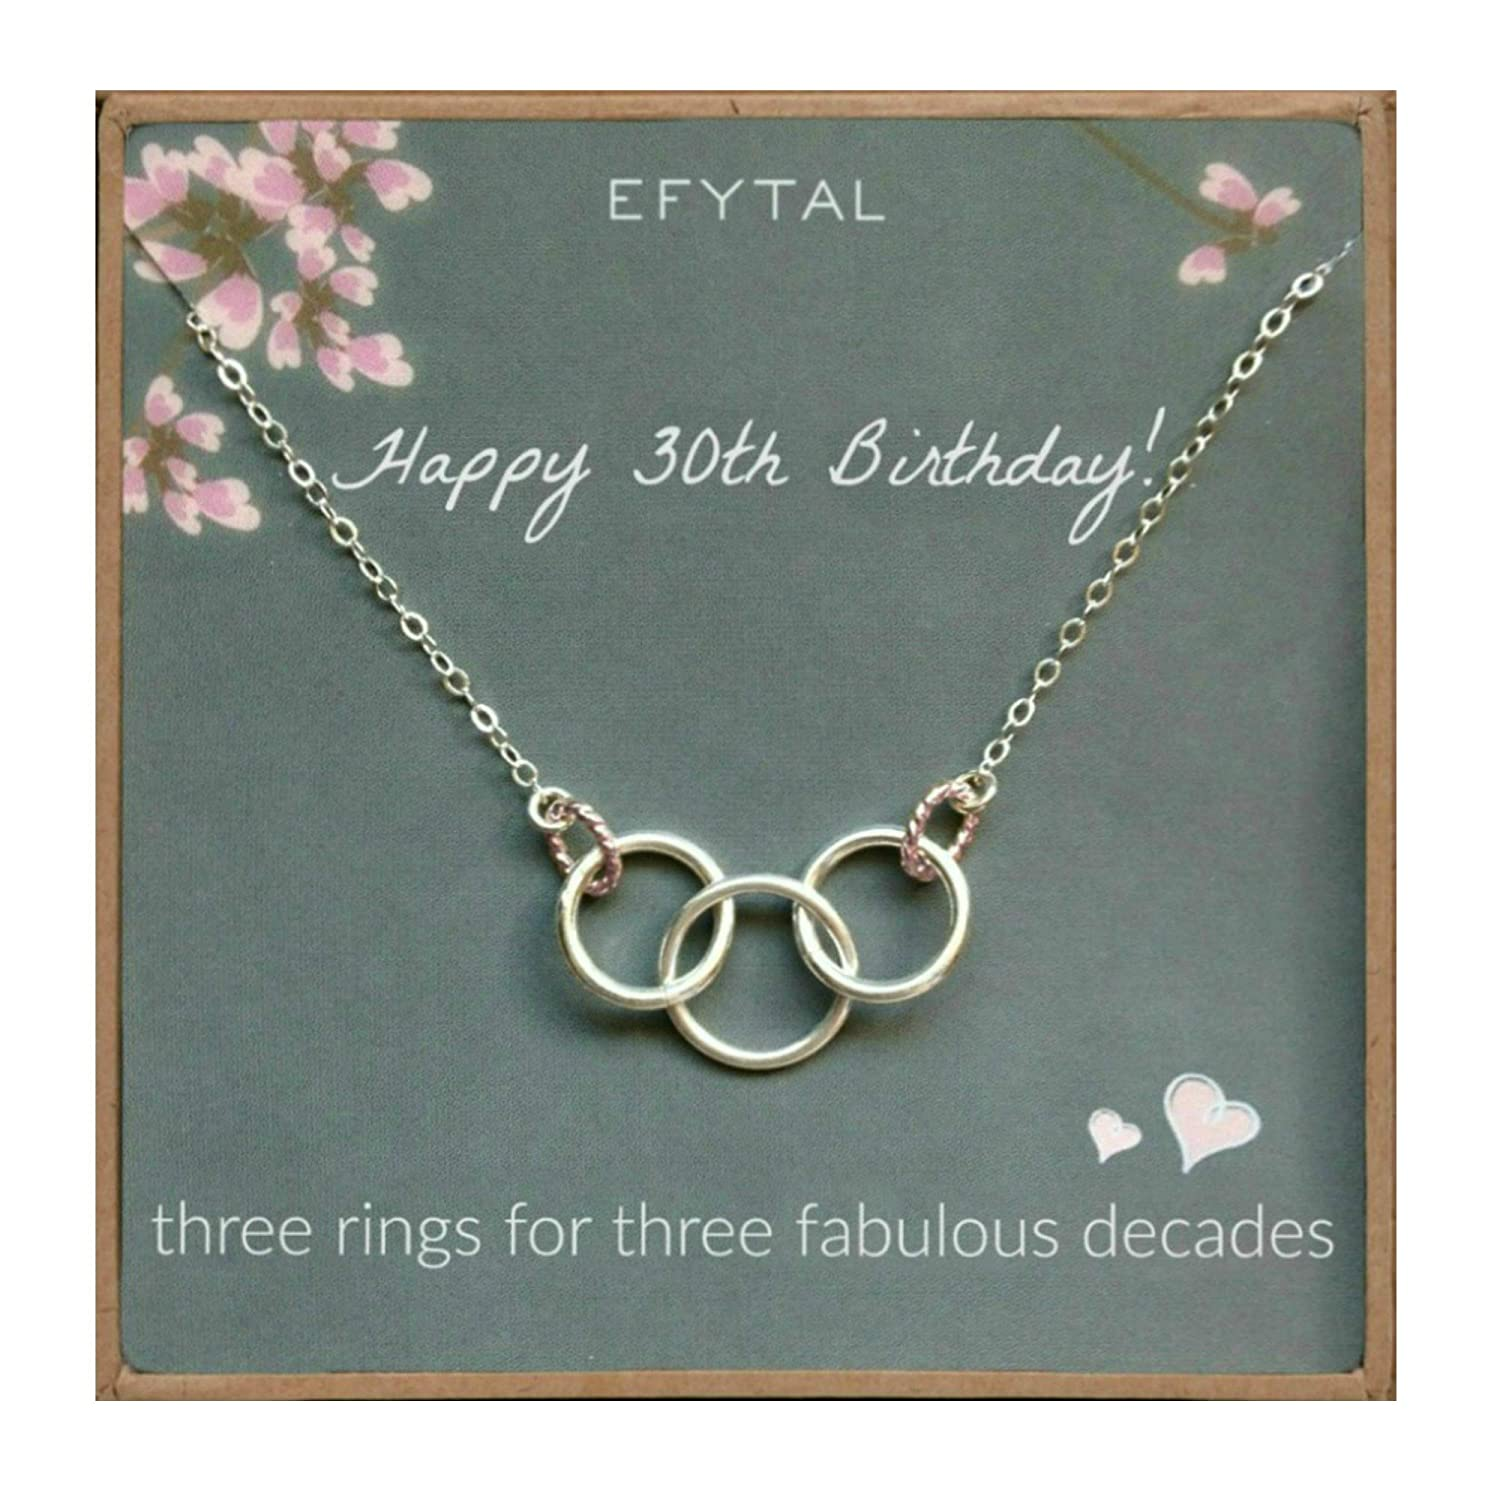 Amazon EFYTAL Happy 30th Birthday Gifts For Women Necklace Sterling Silver 3 Rings Three Decades Necklaces Gift Ideas Jewelry